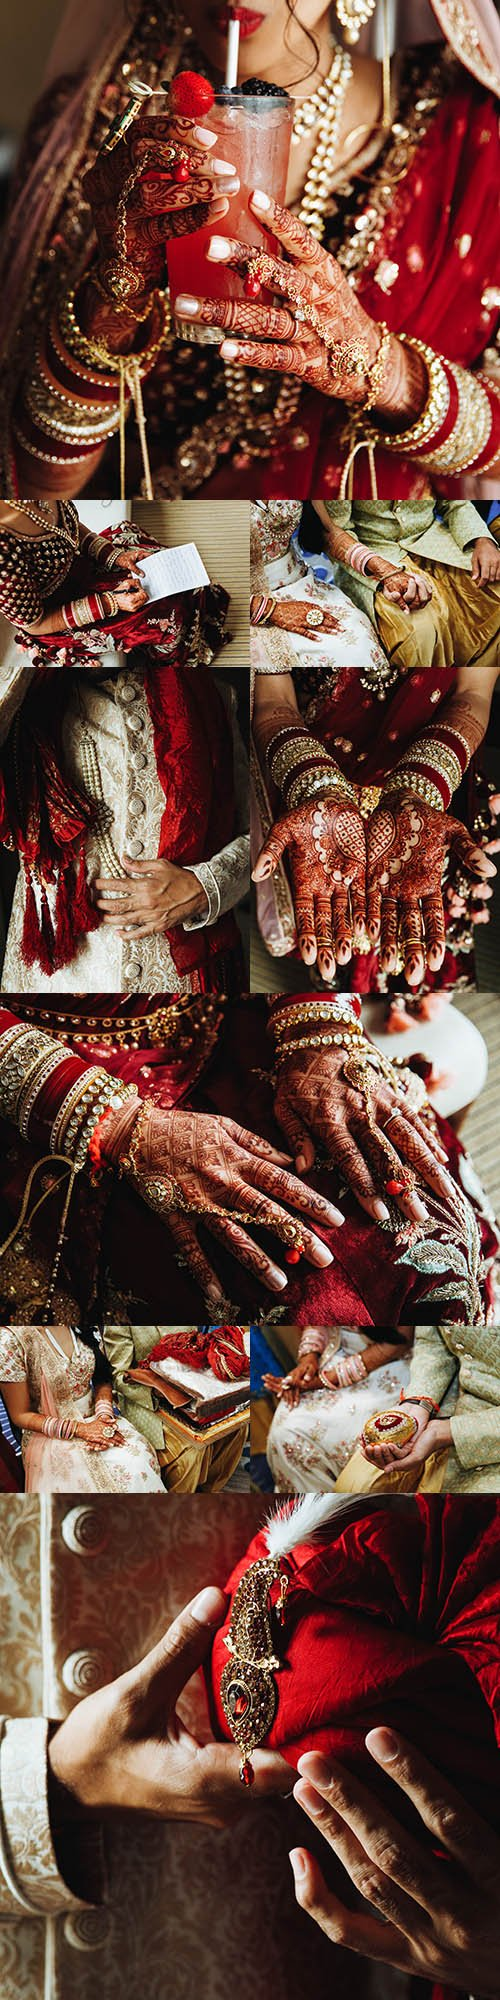 India wedding tradition ceremony and clothing items 2